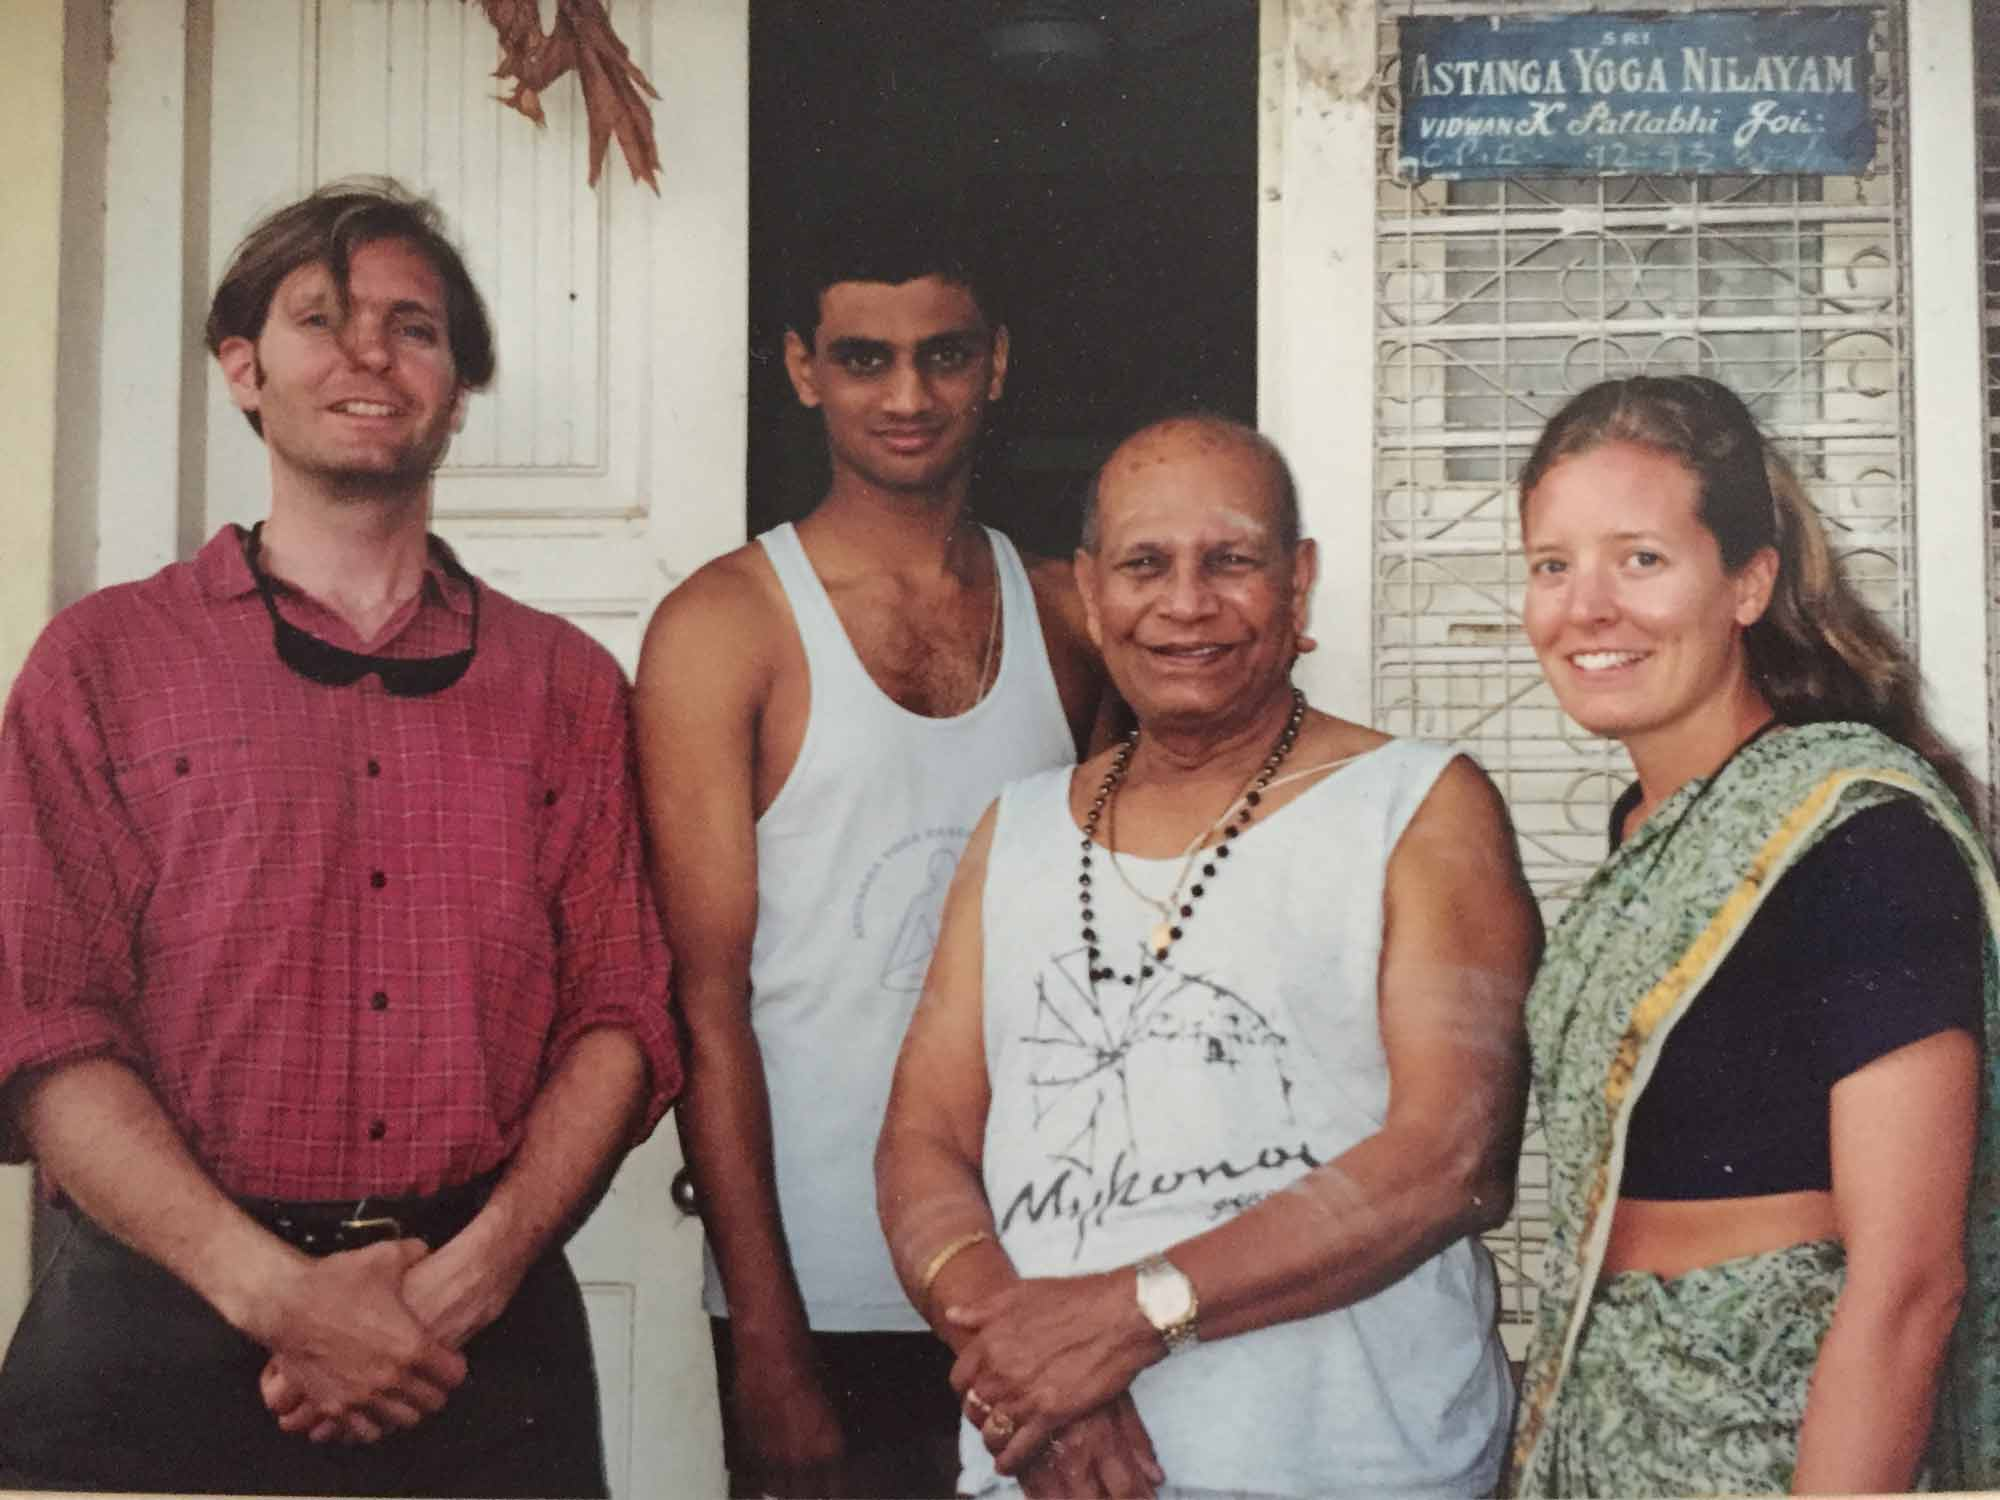 Fiona and Julian with Pattabhi Jois and Sharath Jois in Lakshmipuram, Mysore, India in 2000.